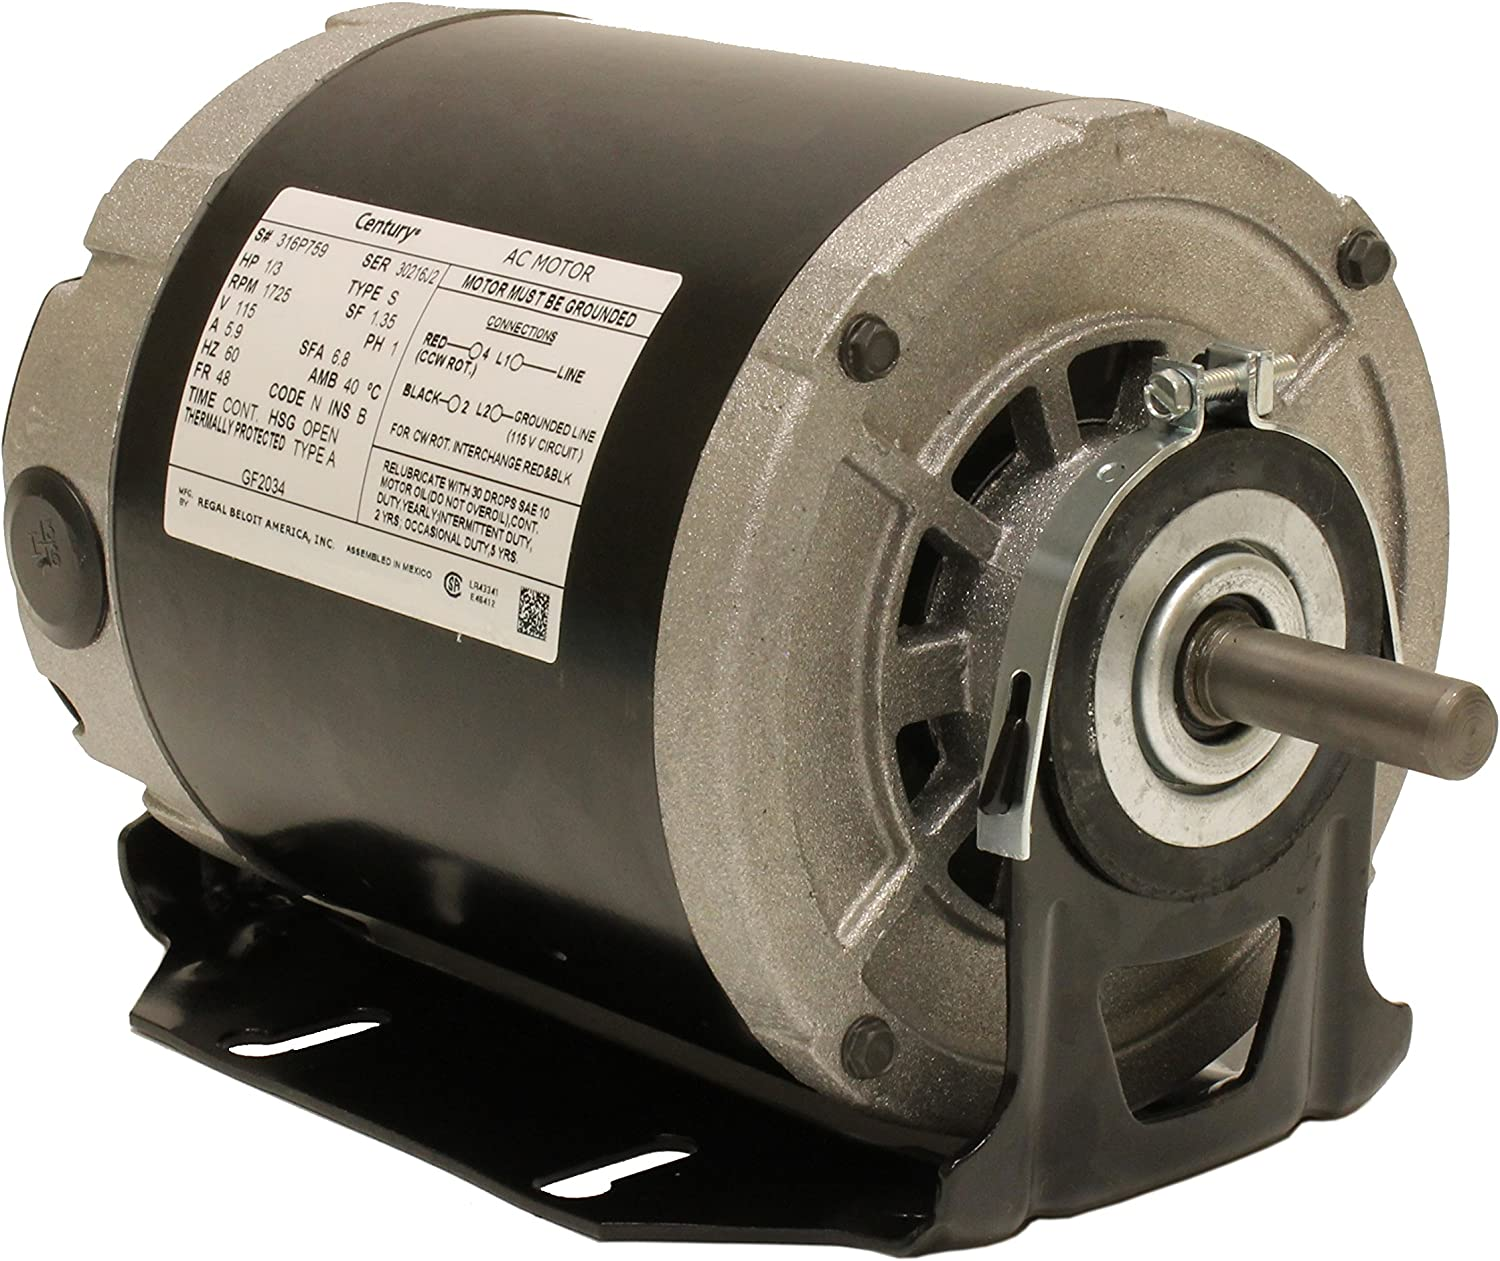 A.O. Smith GF2034 Century Resilient Base Split Phase Electric Motor, 115 Vac, 6.8 A, 1/3 Hp, 1725 Rpm - Electric Fan Motors -